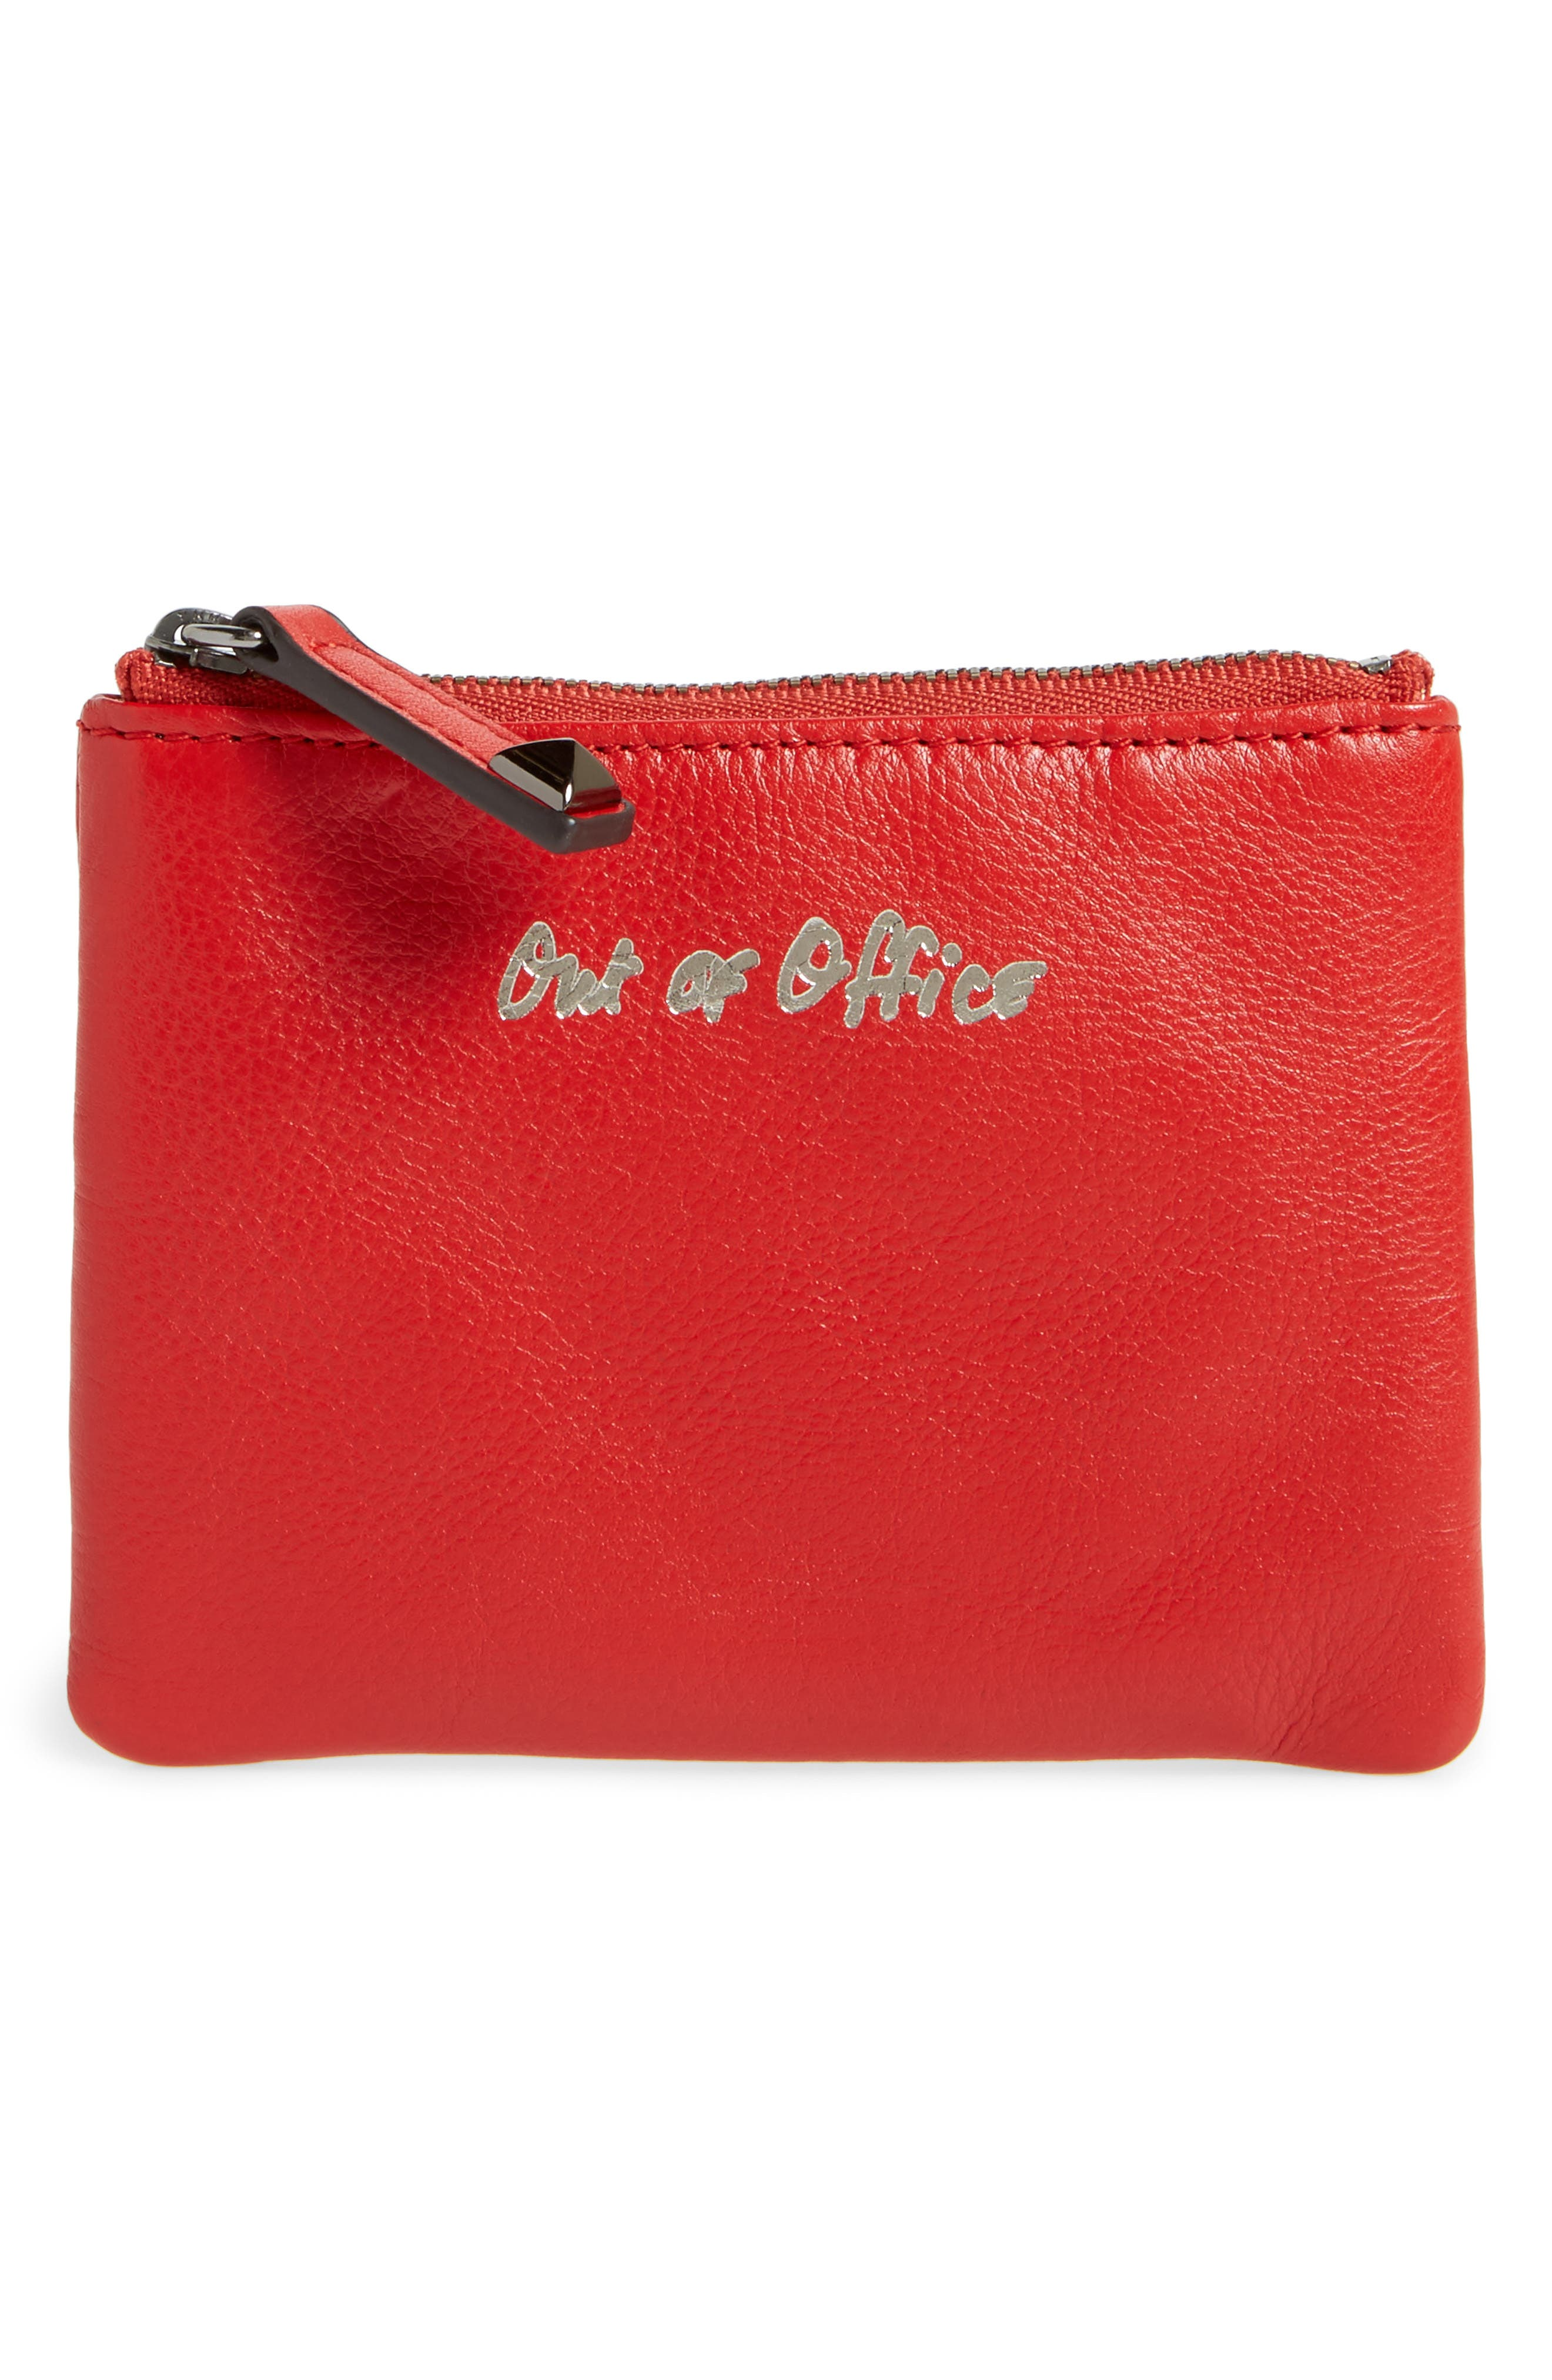 Rebecca Minkoff Betty - Out of Office Leather Pouch